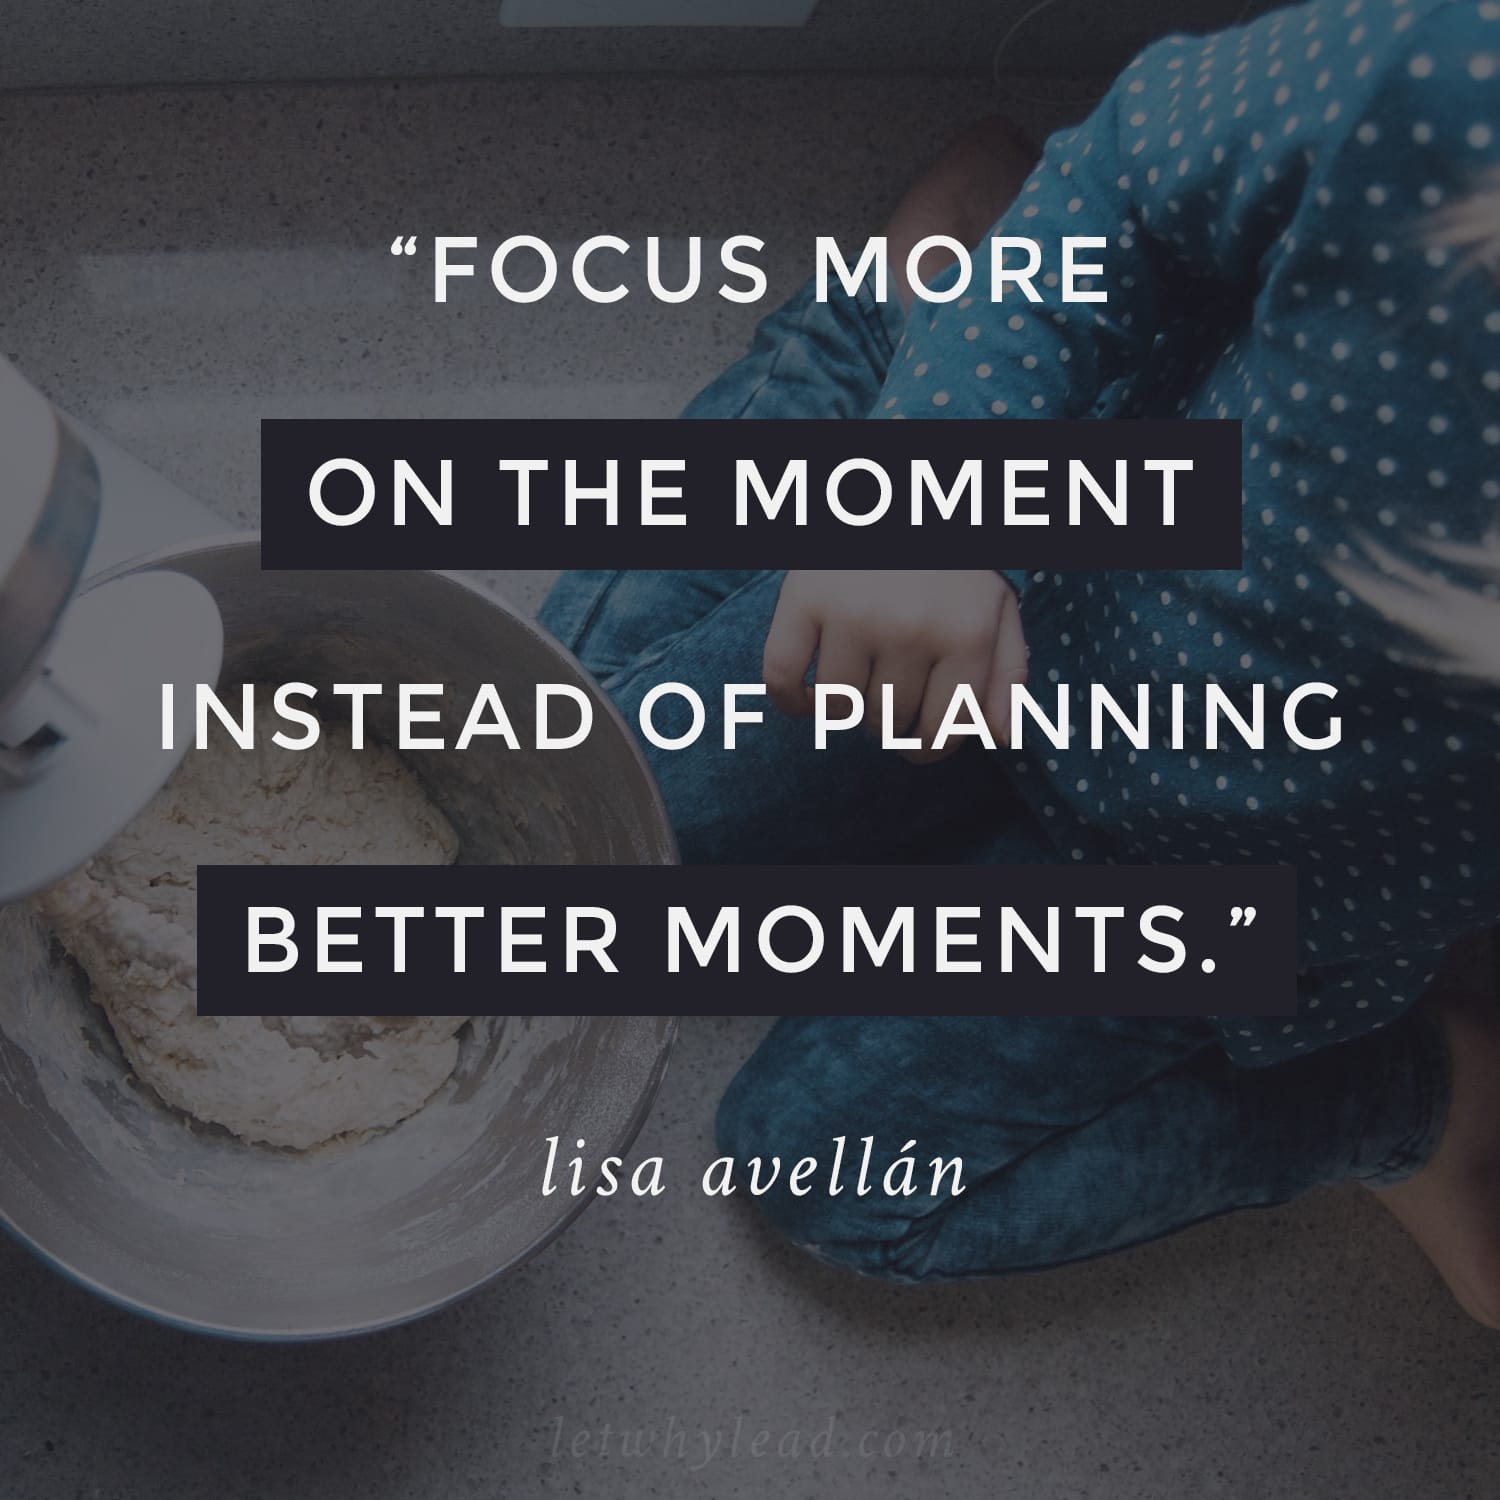 Focus More on the Moment Instead of Planning Better Moments